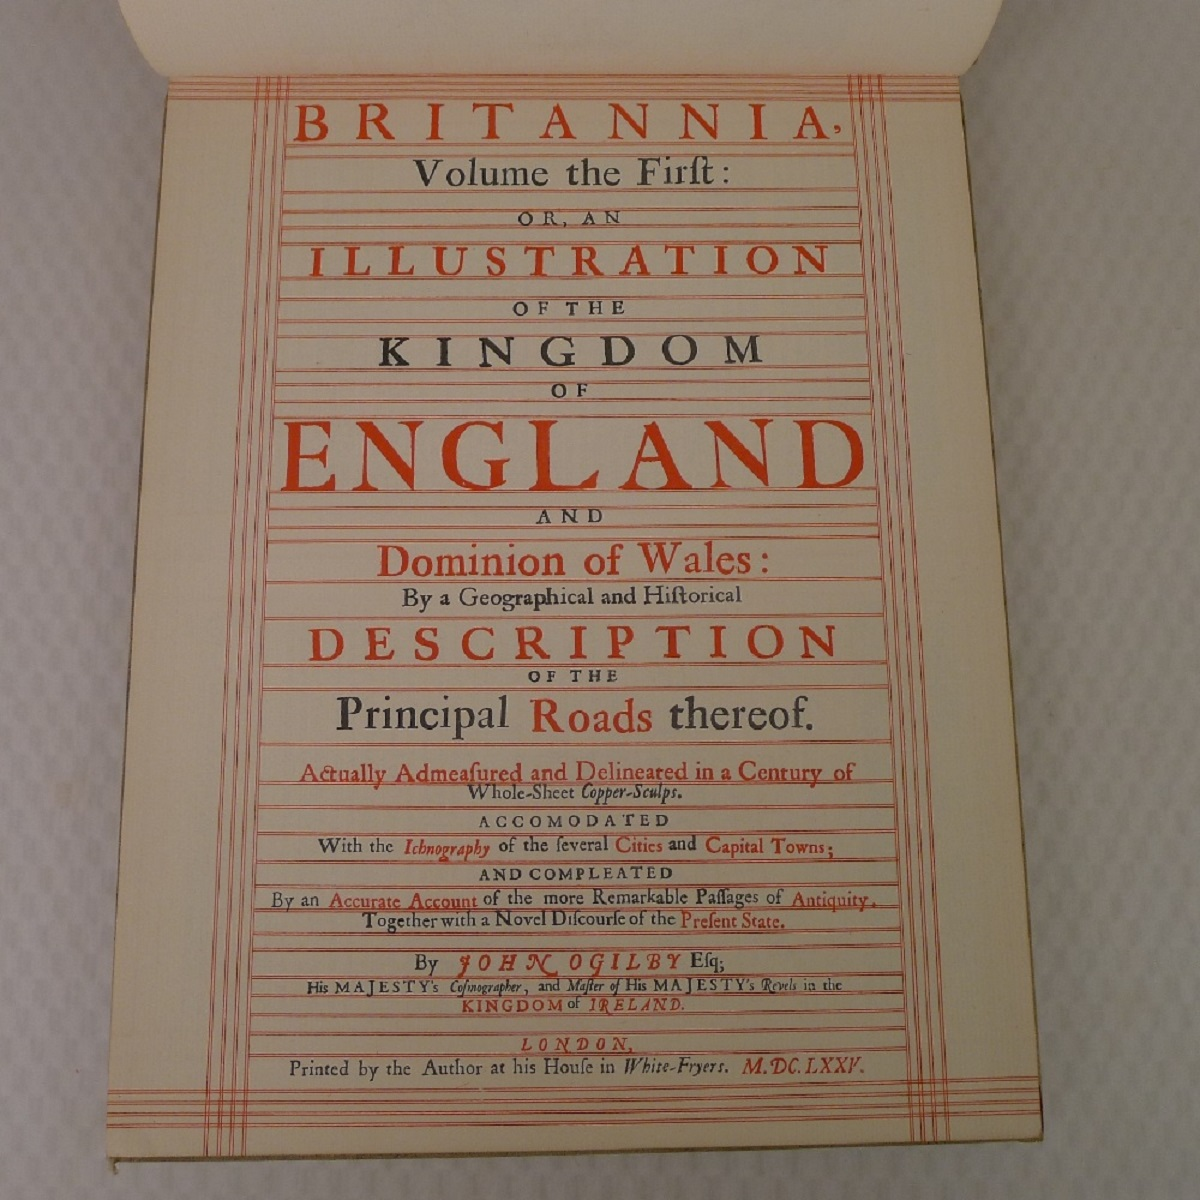 A facsimile reprint of Britannia: Volume The First or an Illustration of the Kingdom of England - Image 4 of 7